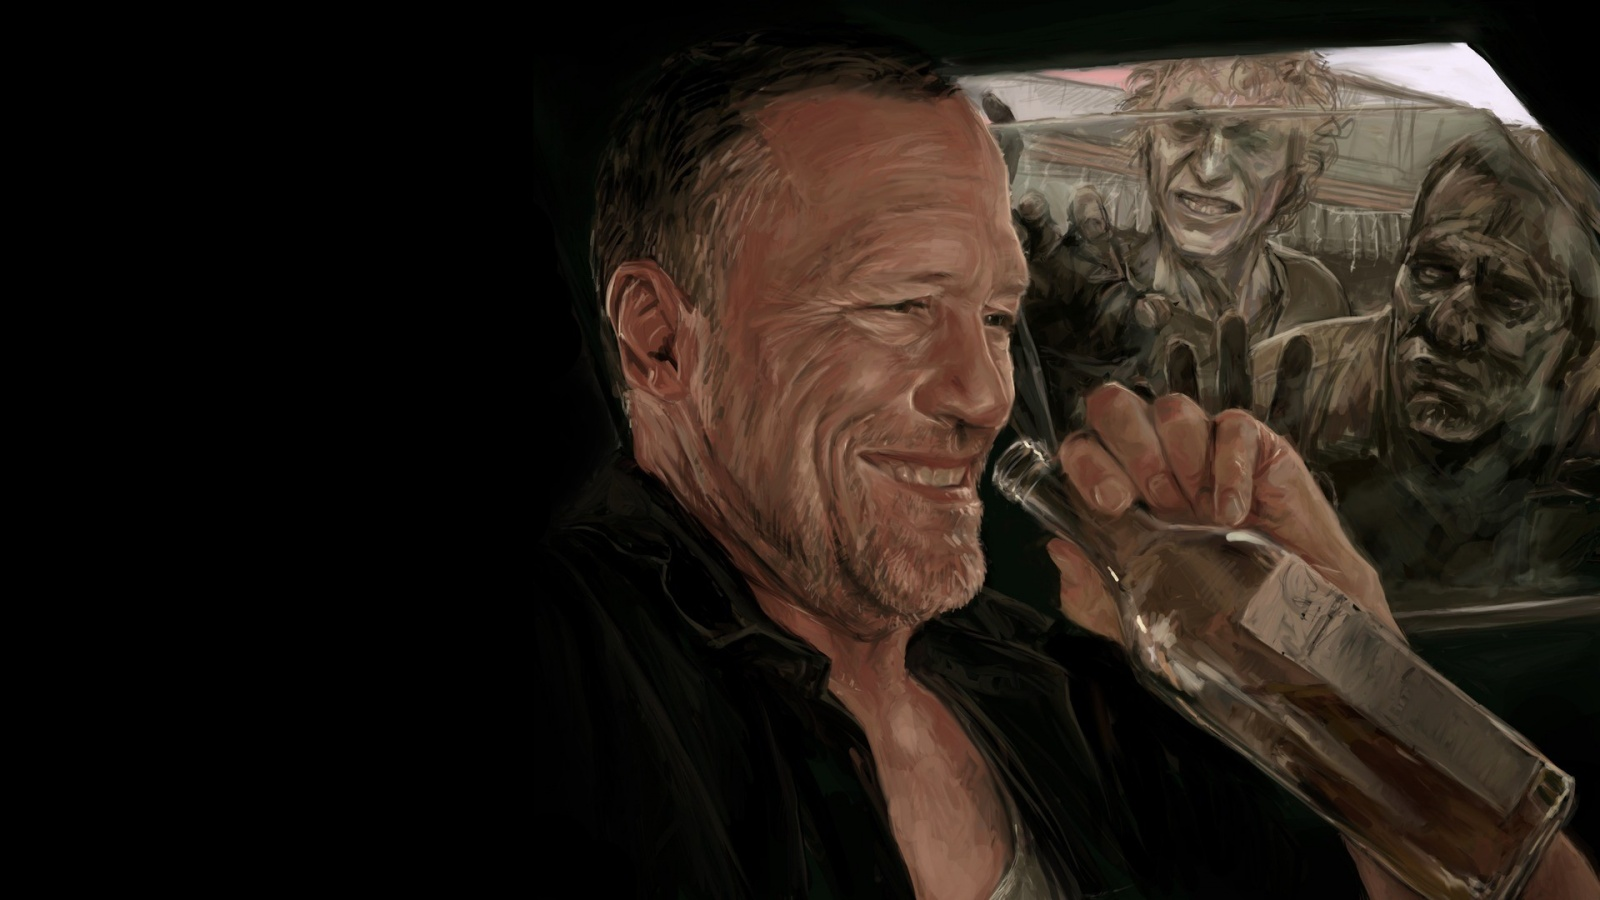 Description: The Wallpaper above is Michael rooker zombies art Wallpaper in Resolution 1600x900. Choose your Resolution and Download Michael rooker zombies ...